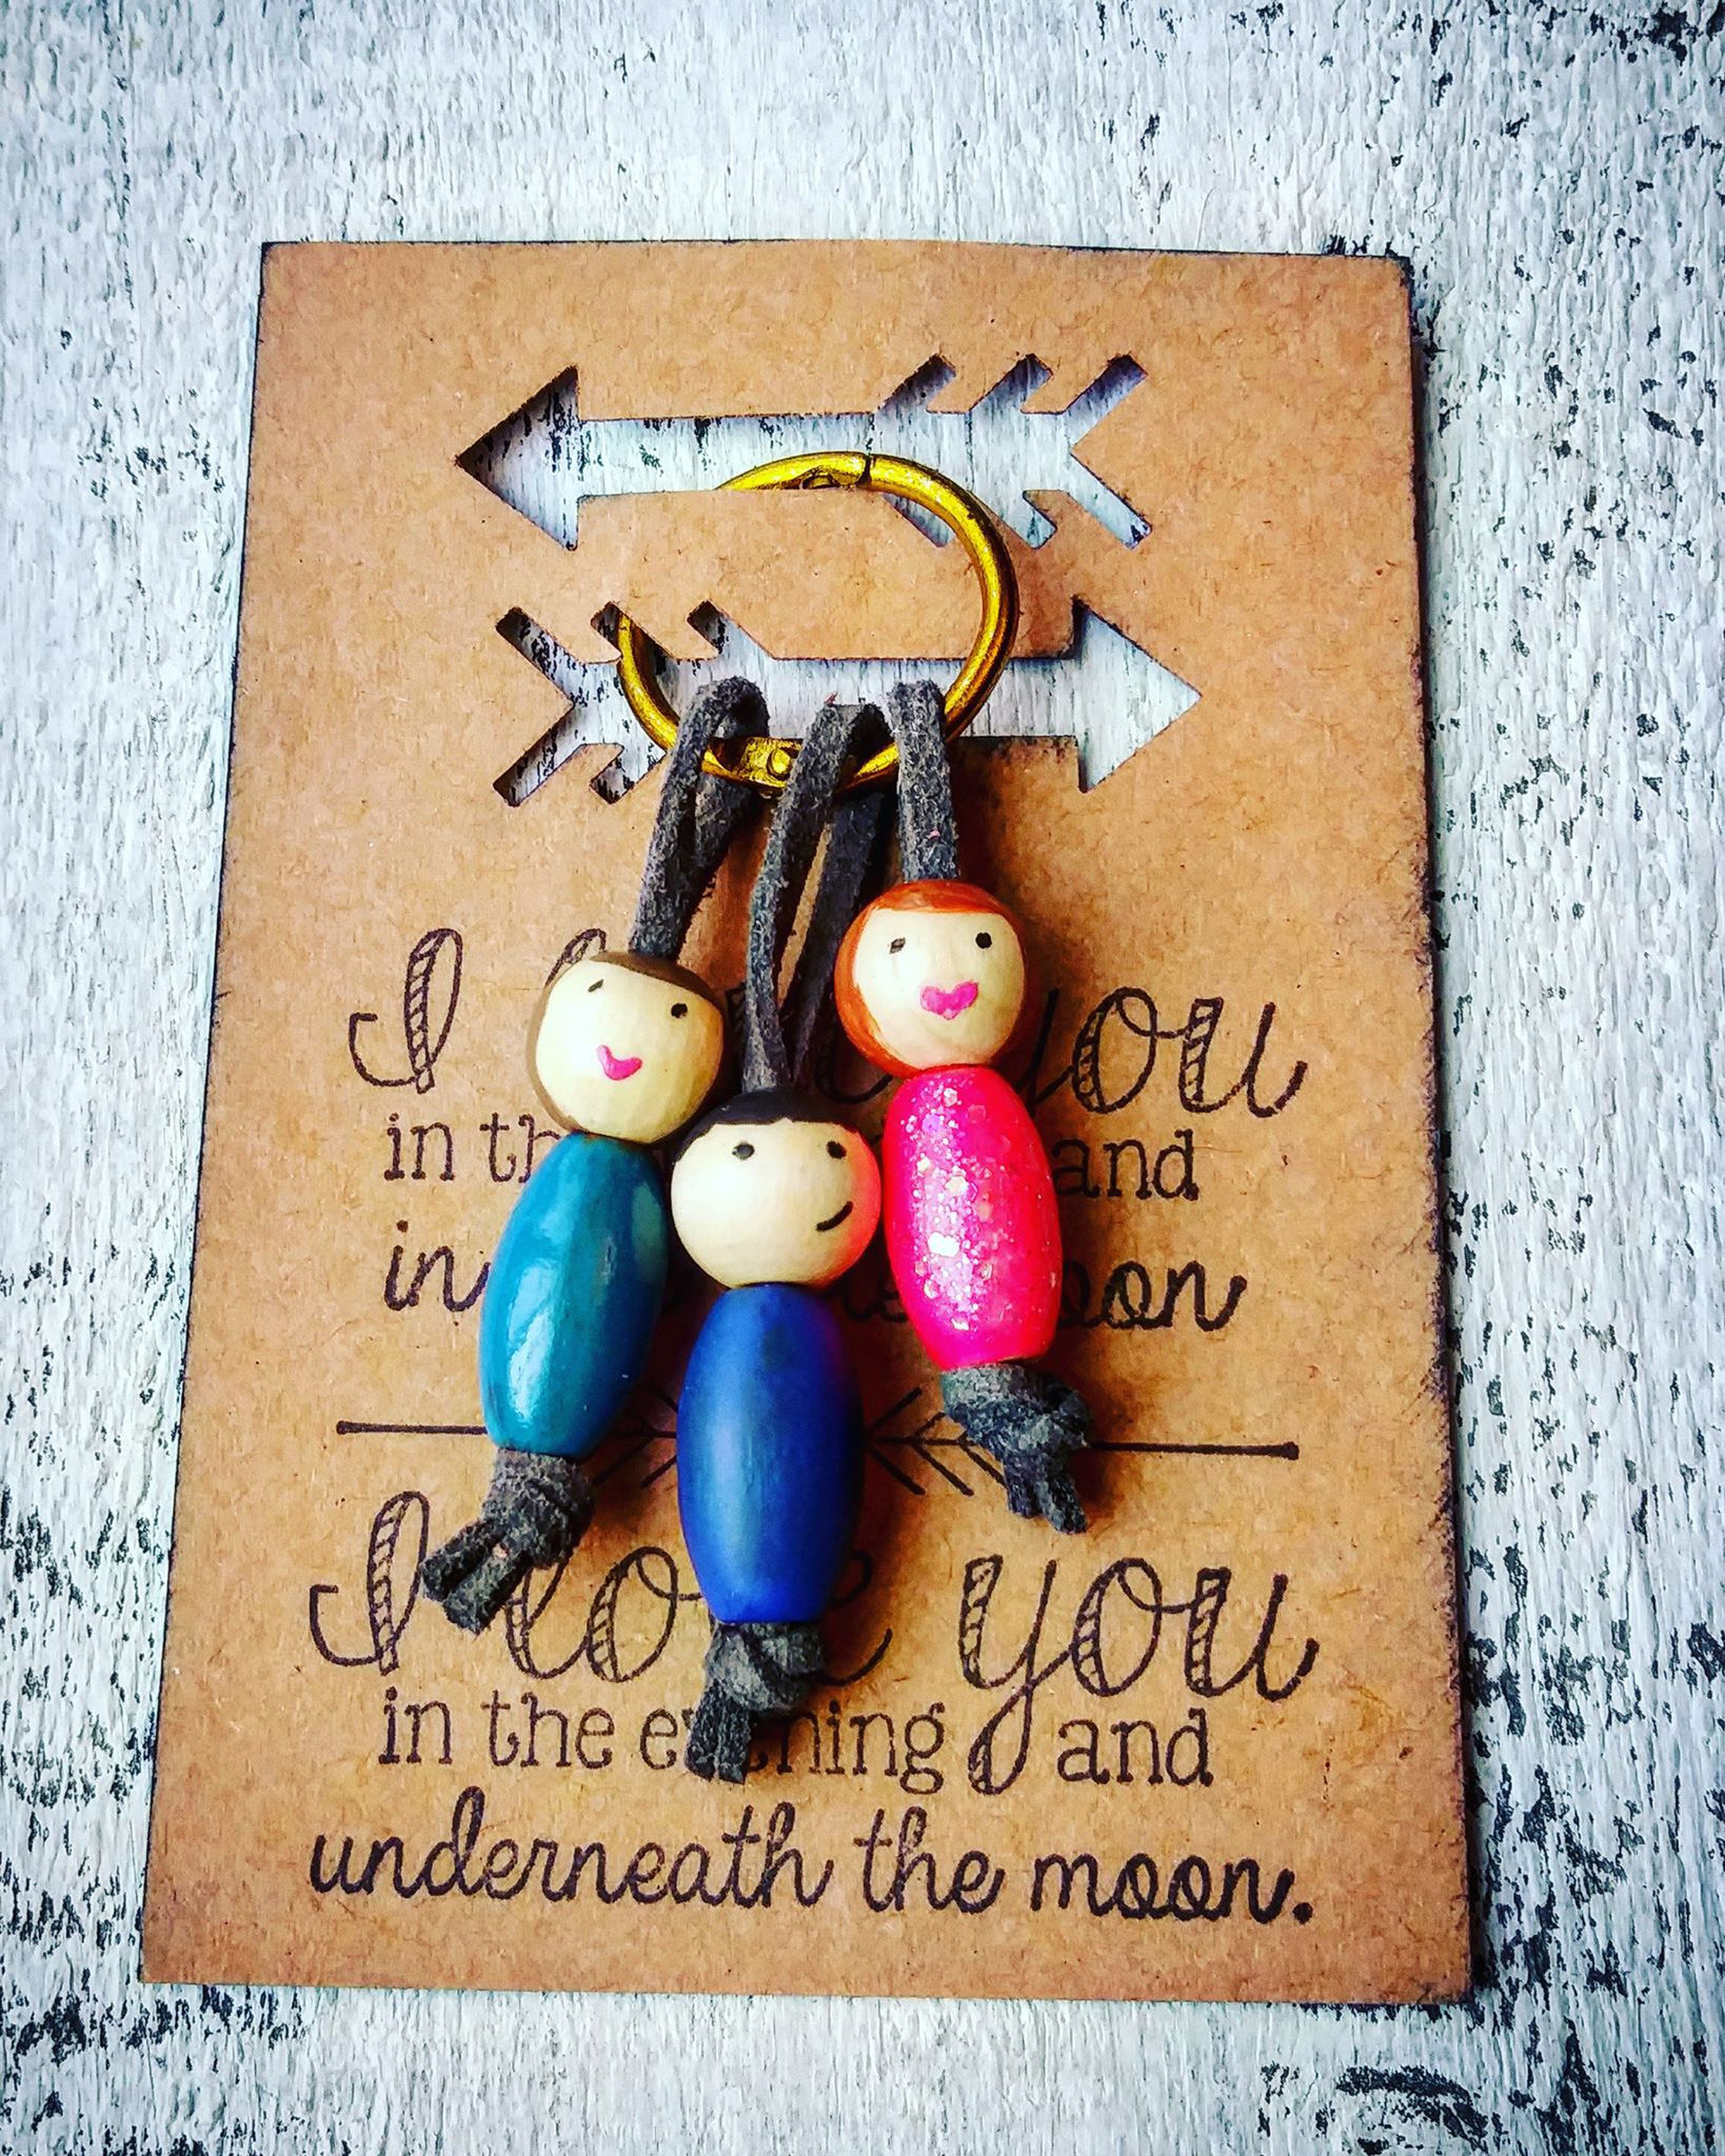 Pocket People: The Simple Tool This Mum Used To Comfort Her Son With